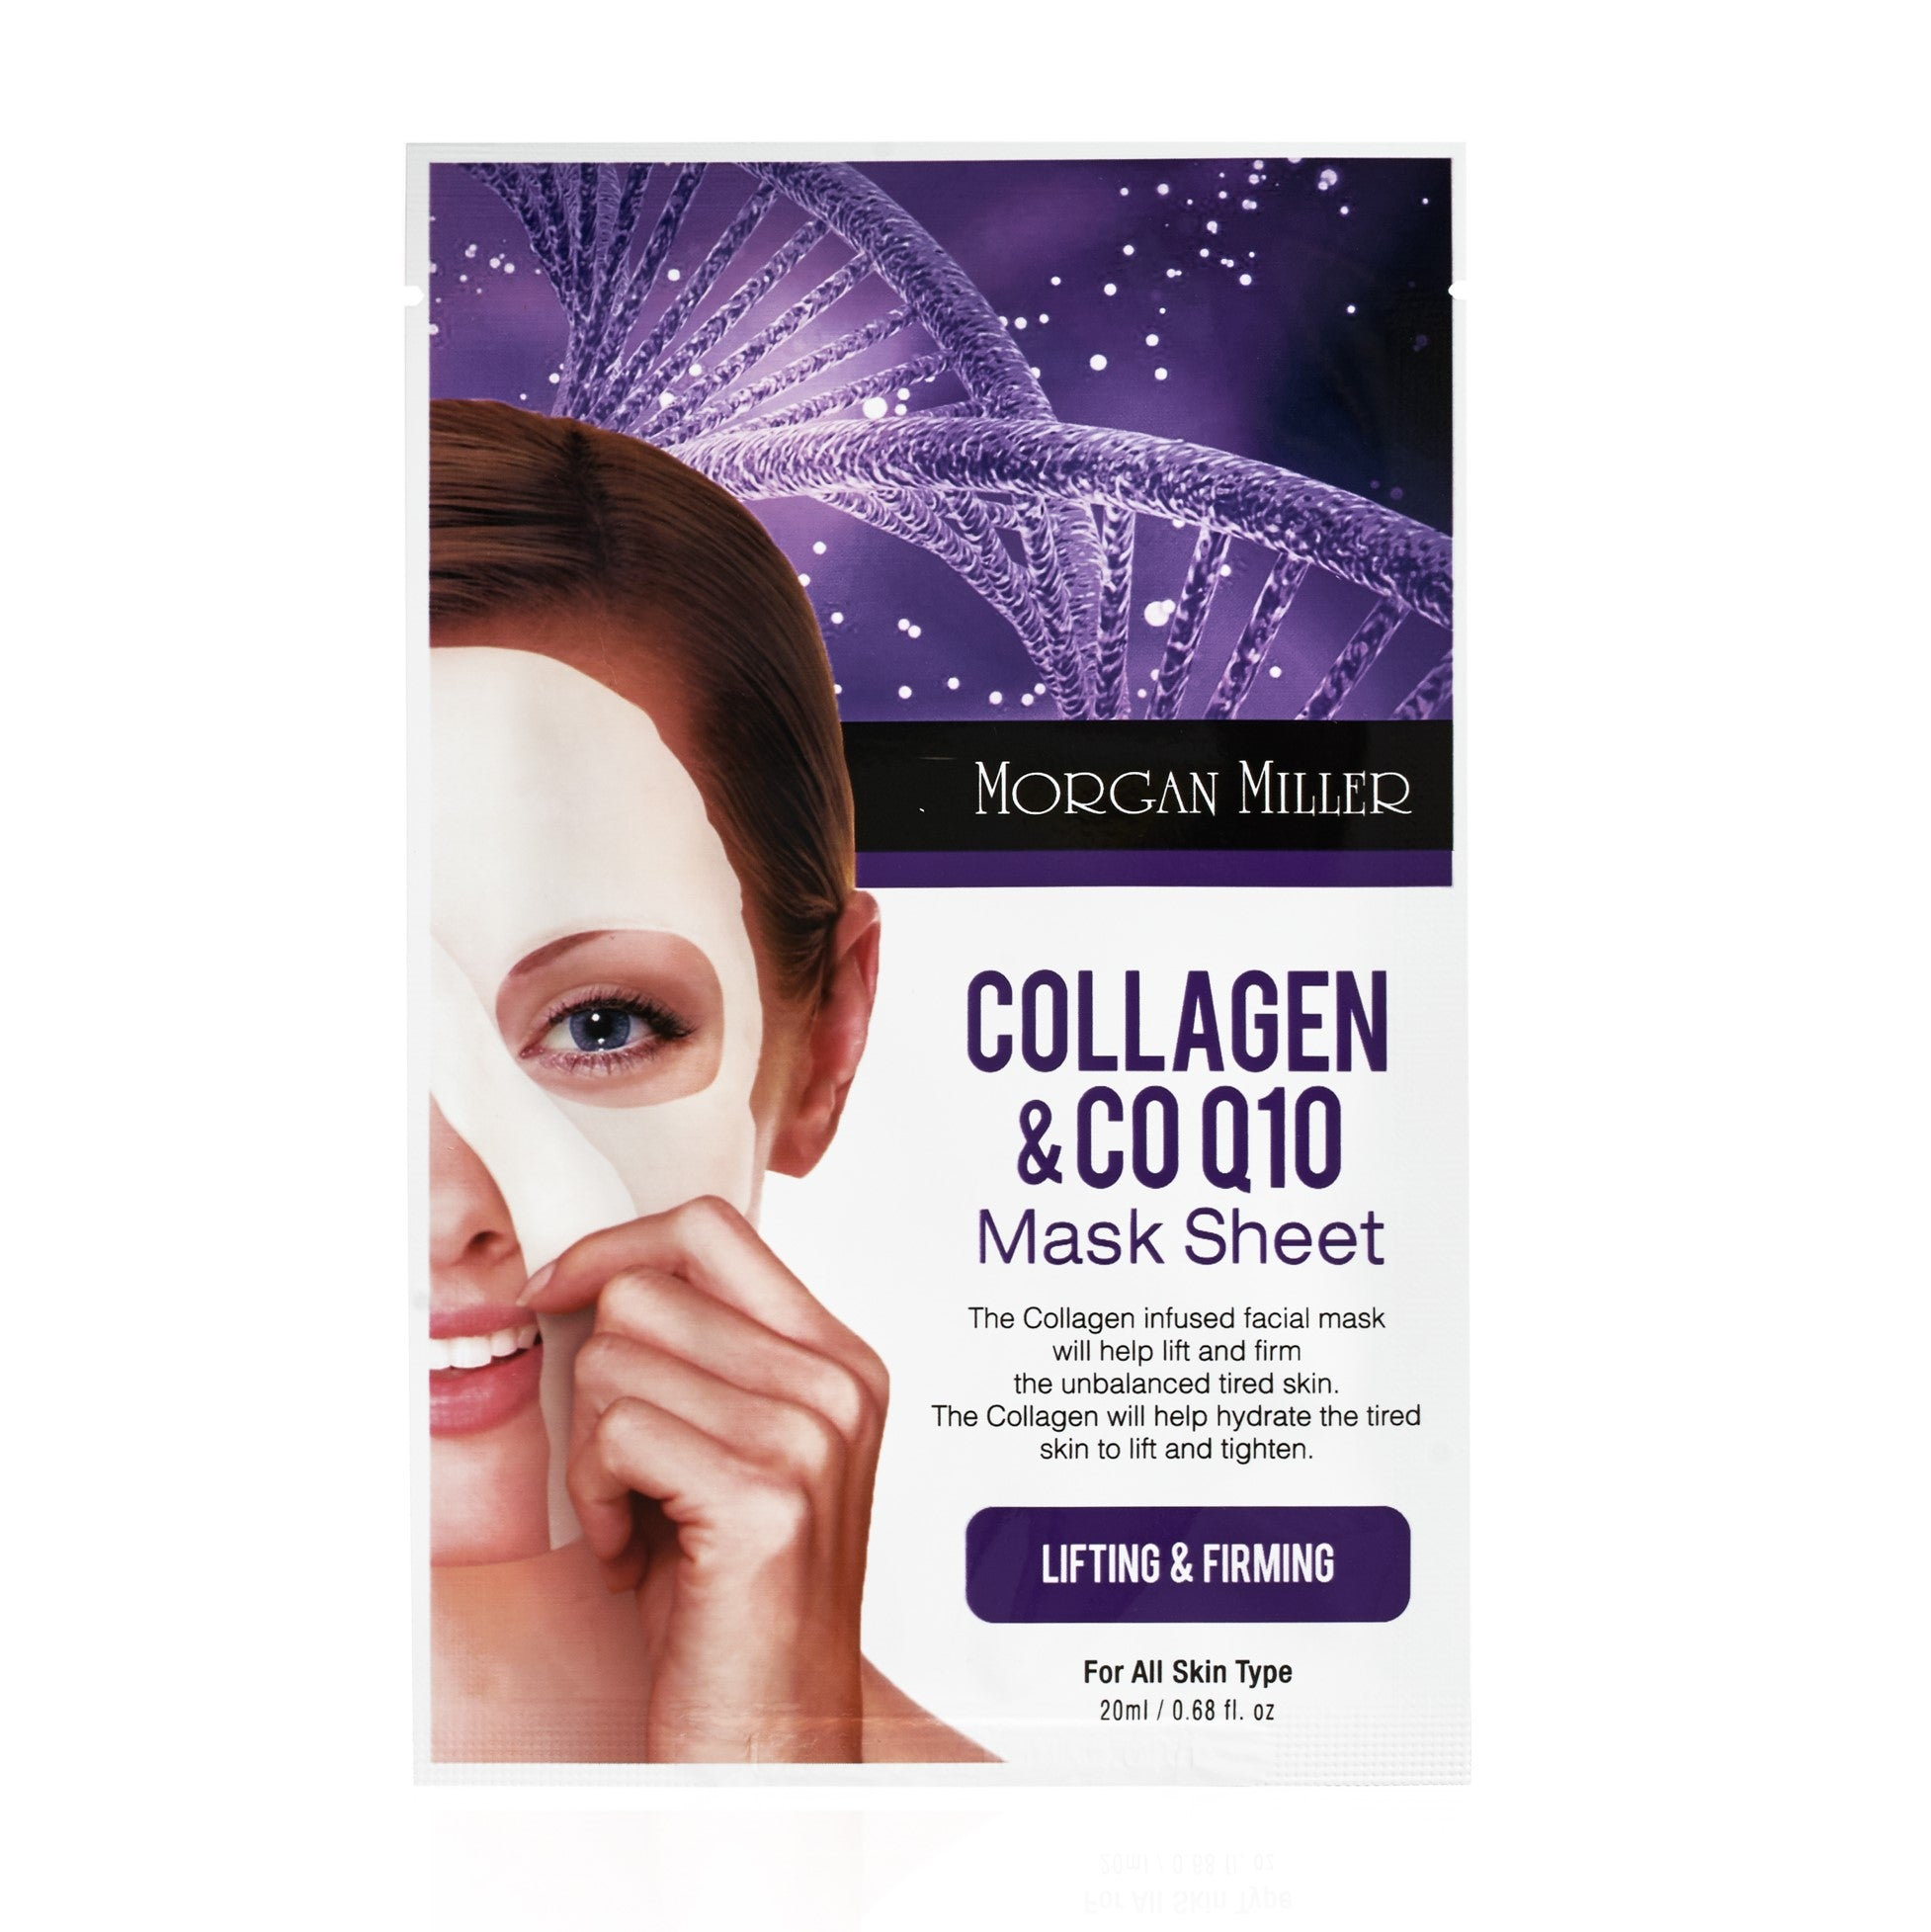 Morgan Miller Collagen Sheet mask